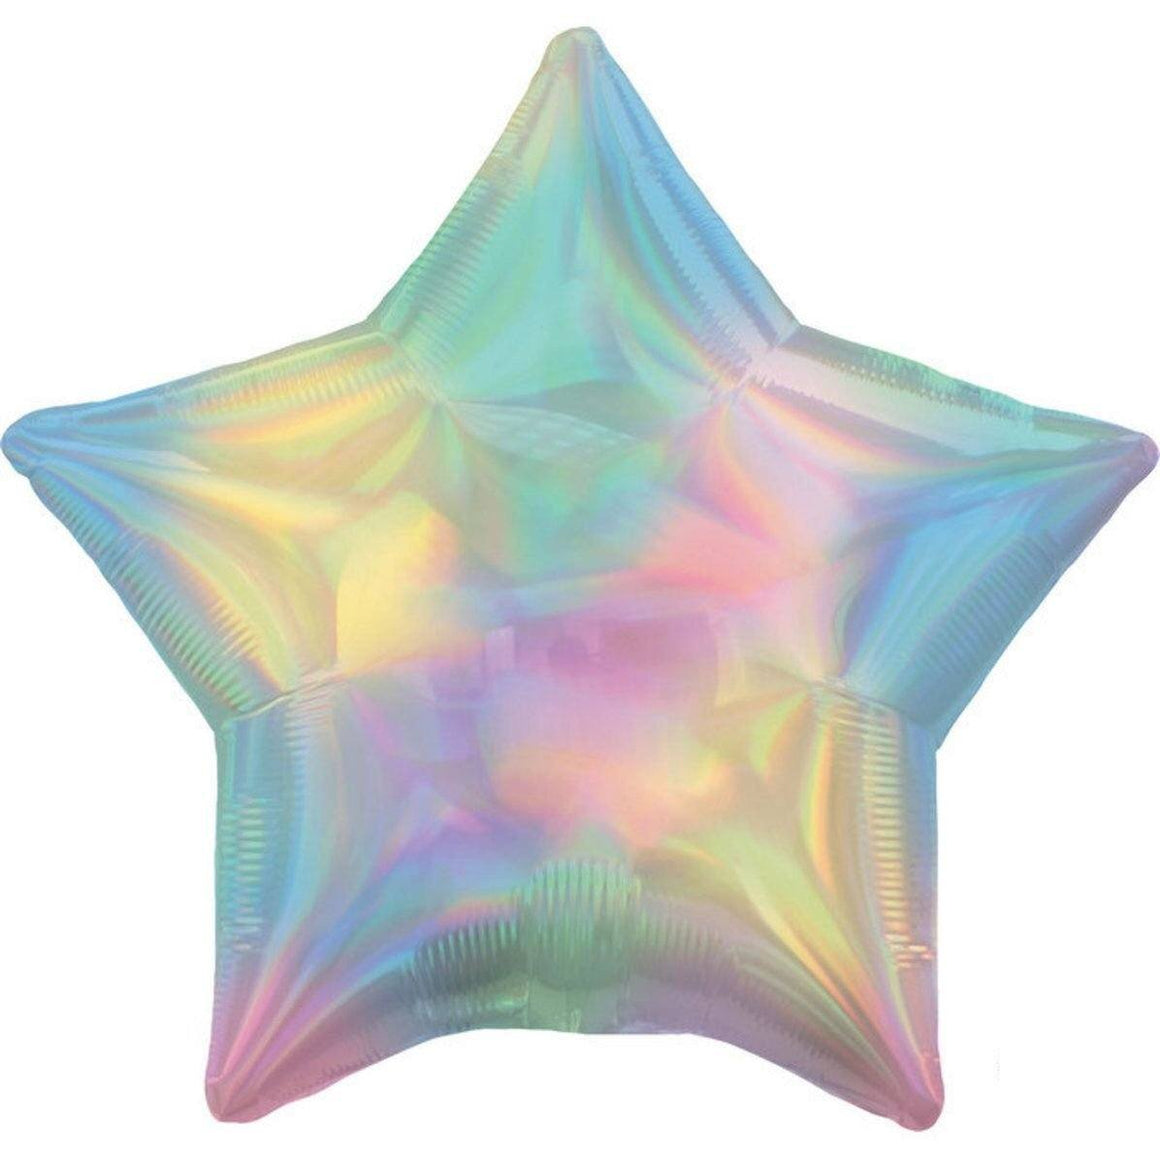 BALLOONS - STAR IRIDESCENT PASTEL RAINBOW, Balloons, QUALATEX - Bon + Co. Party Studio